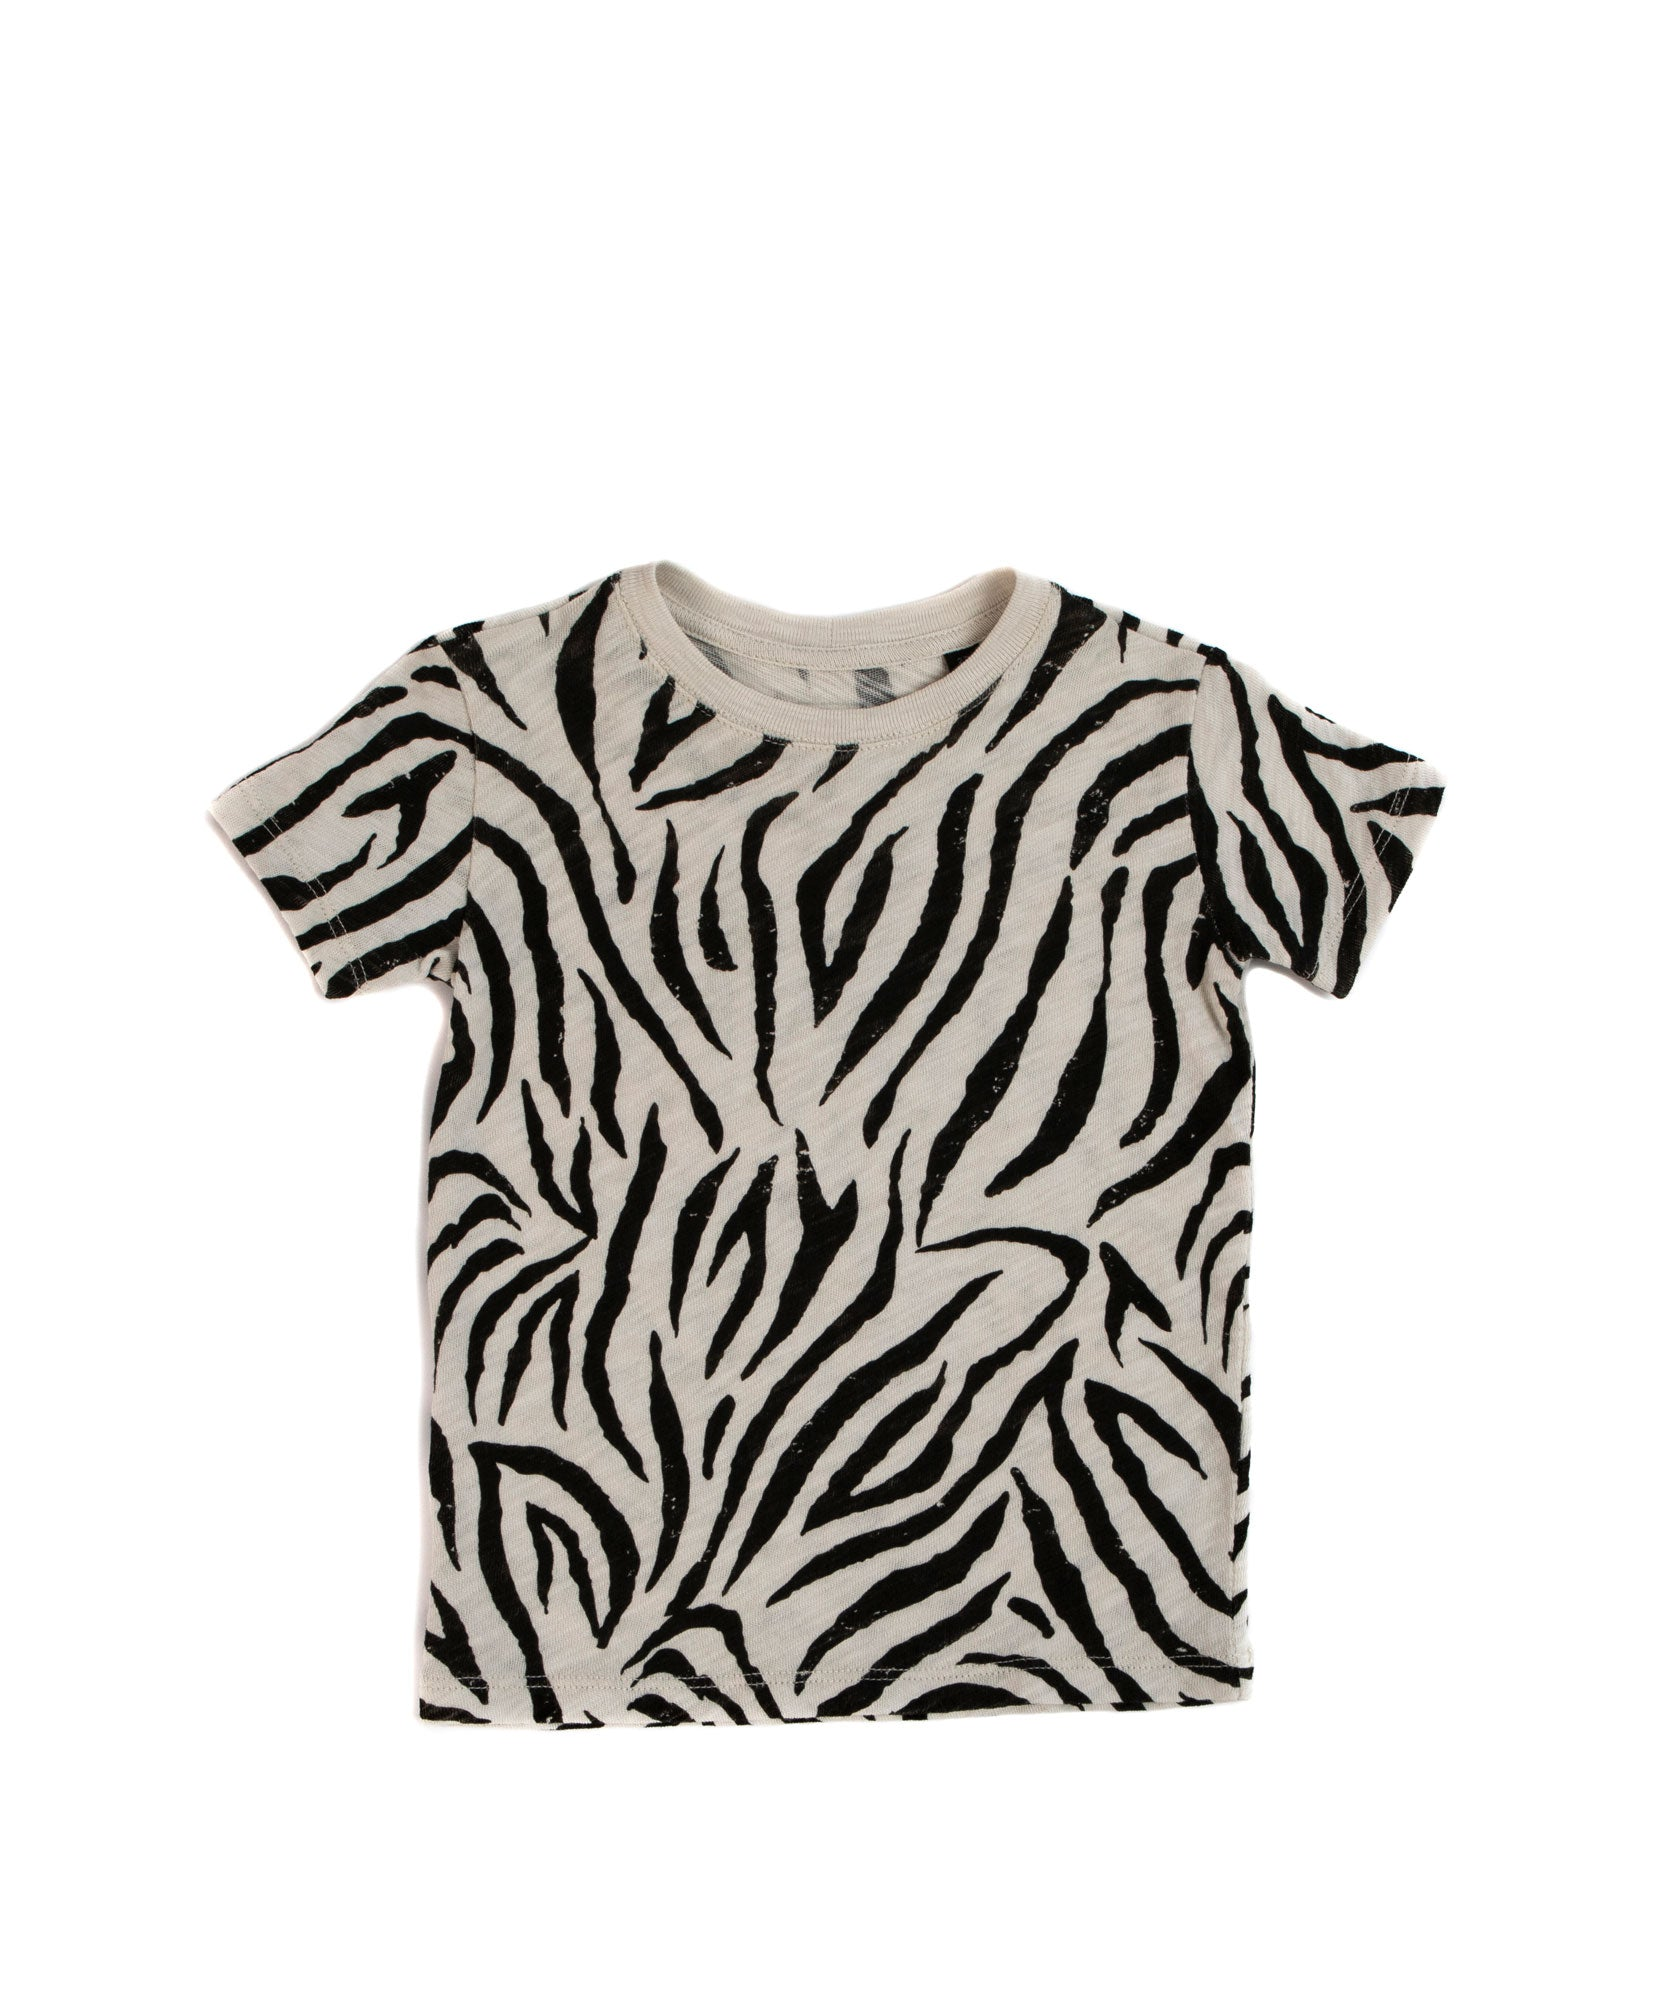 Zebra Print Kids Slub Jersey Short Sleeve Tee - Kid's Cotton Short Sleeve Tee by ATM Anthony Thomas Melillo